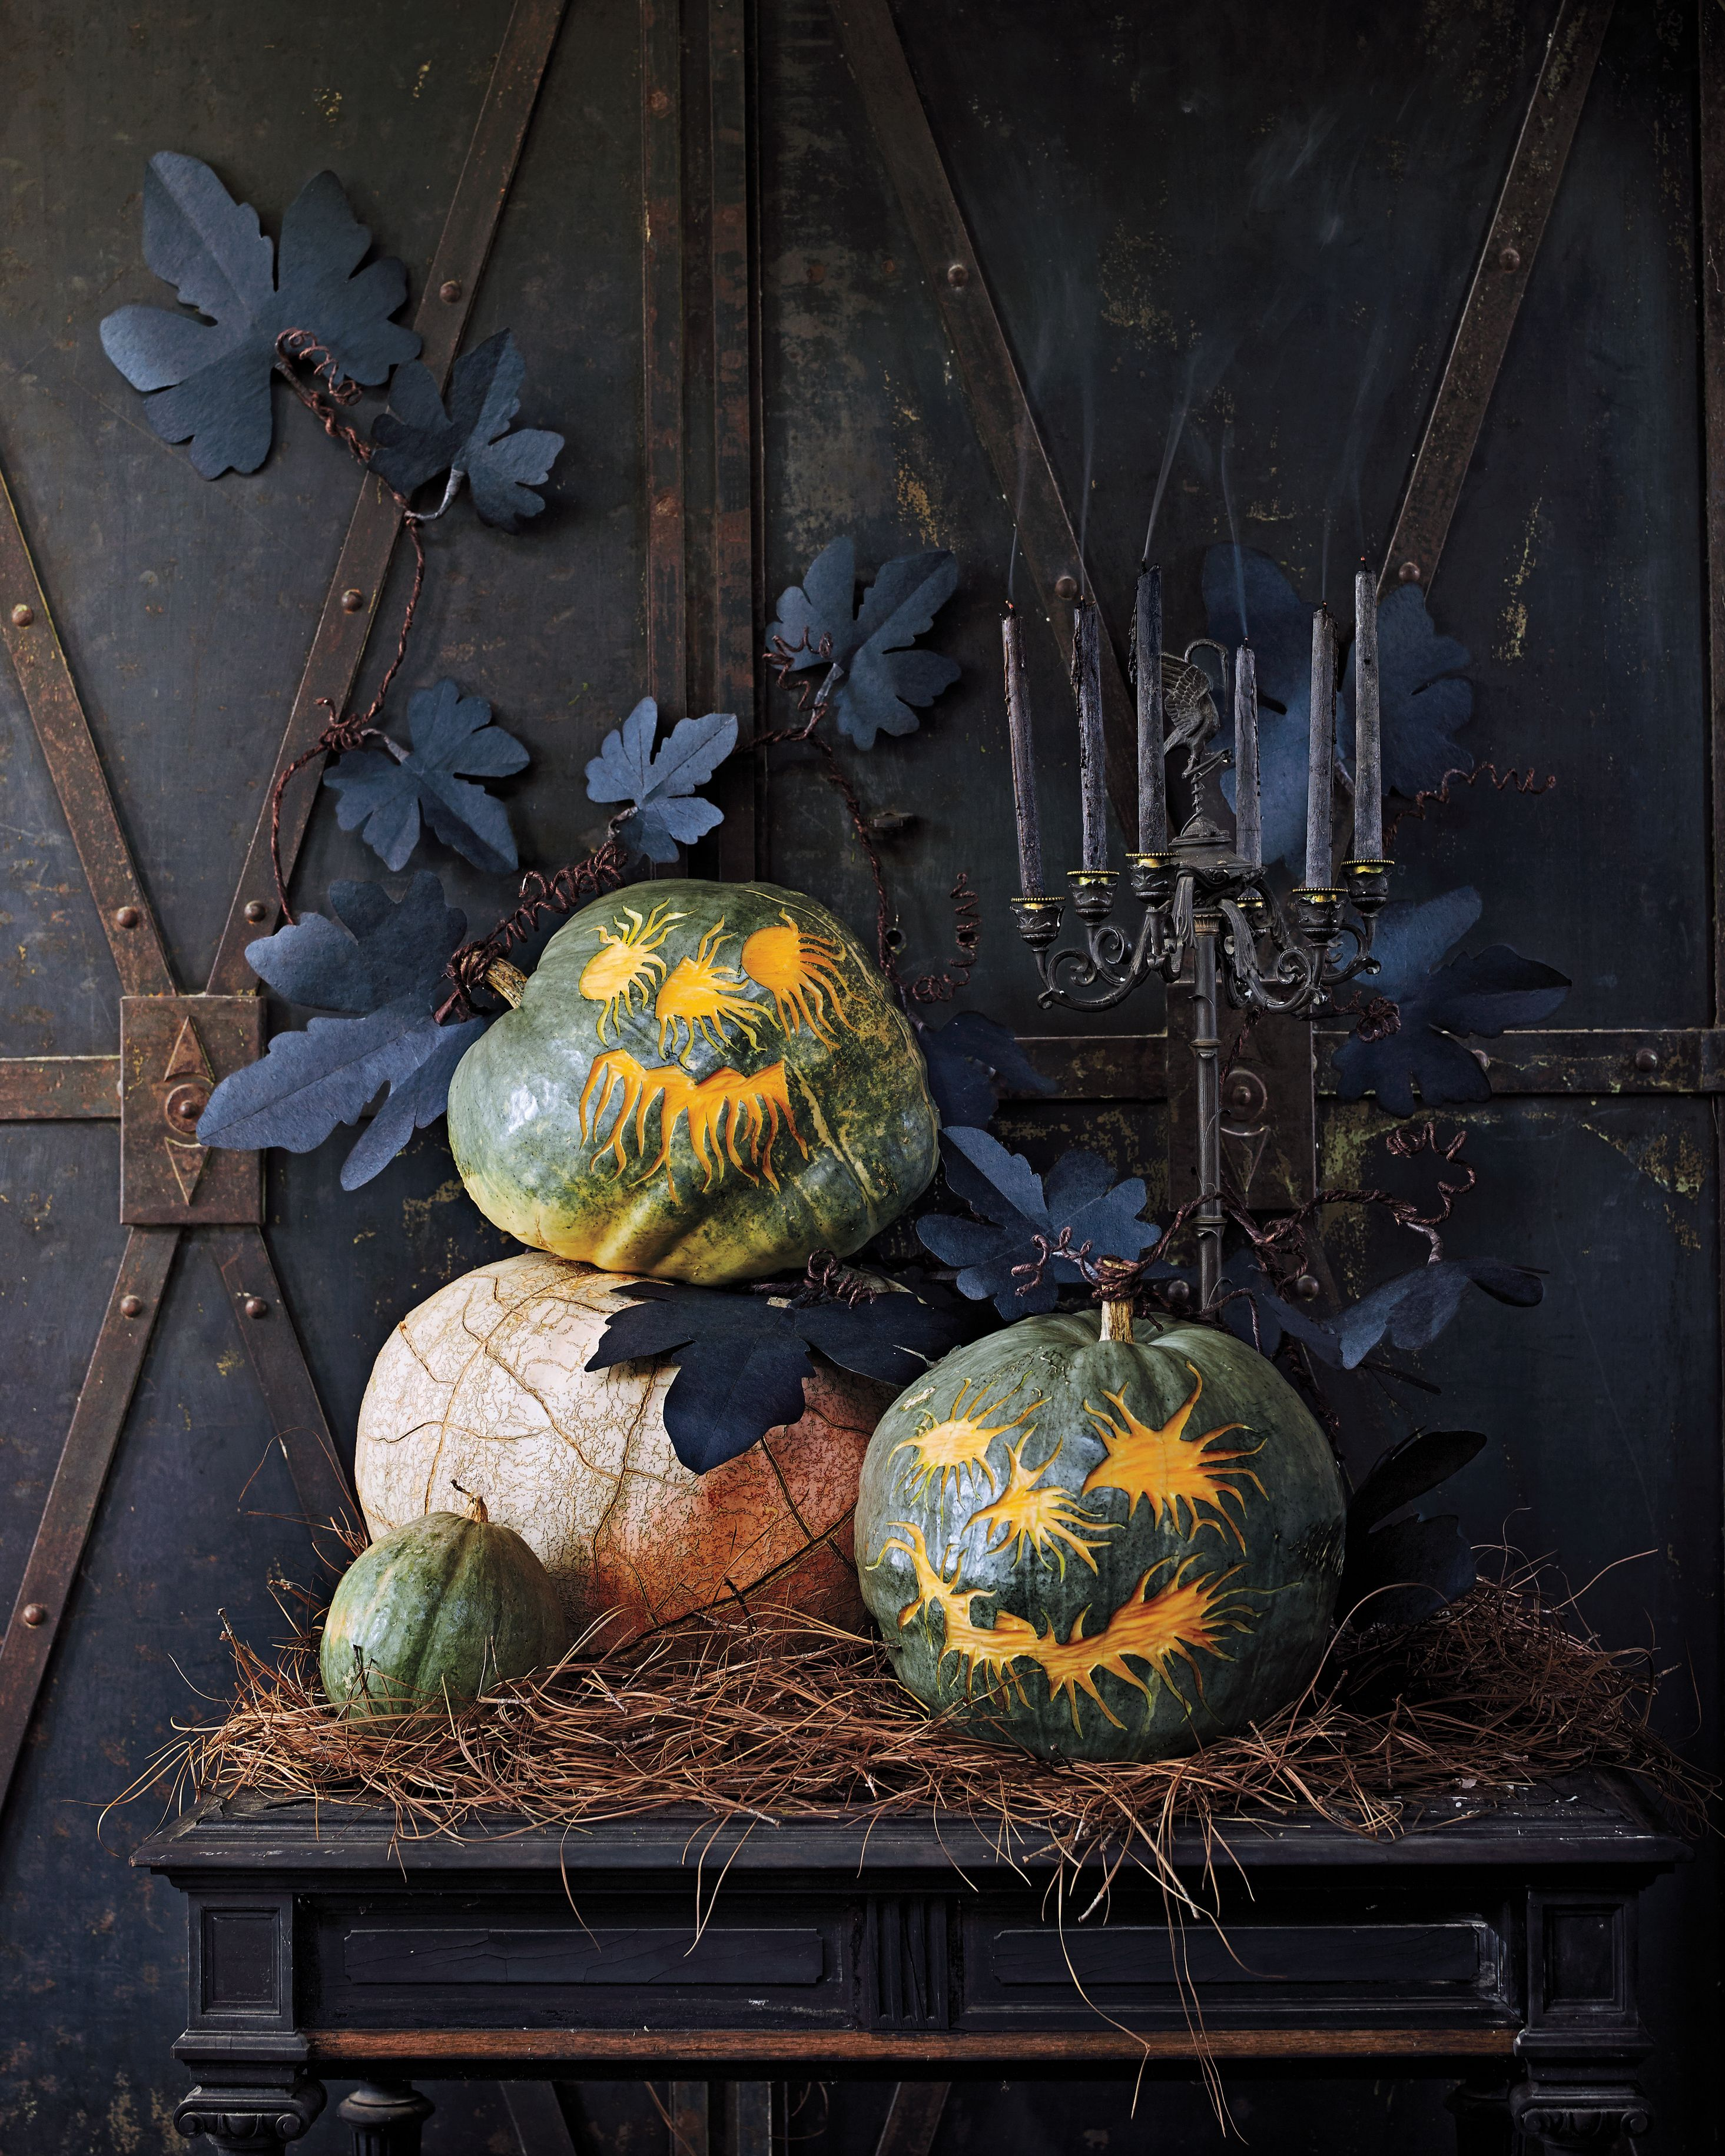 31 Of Our Best Pumpkin Carving And Decorating Ideas Halloween Pumpkins Halloween Decorations Scary Pumpkin